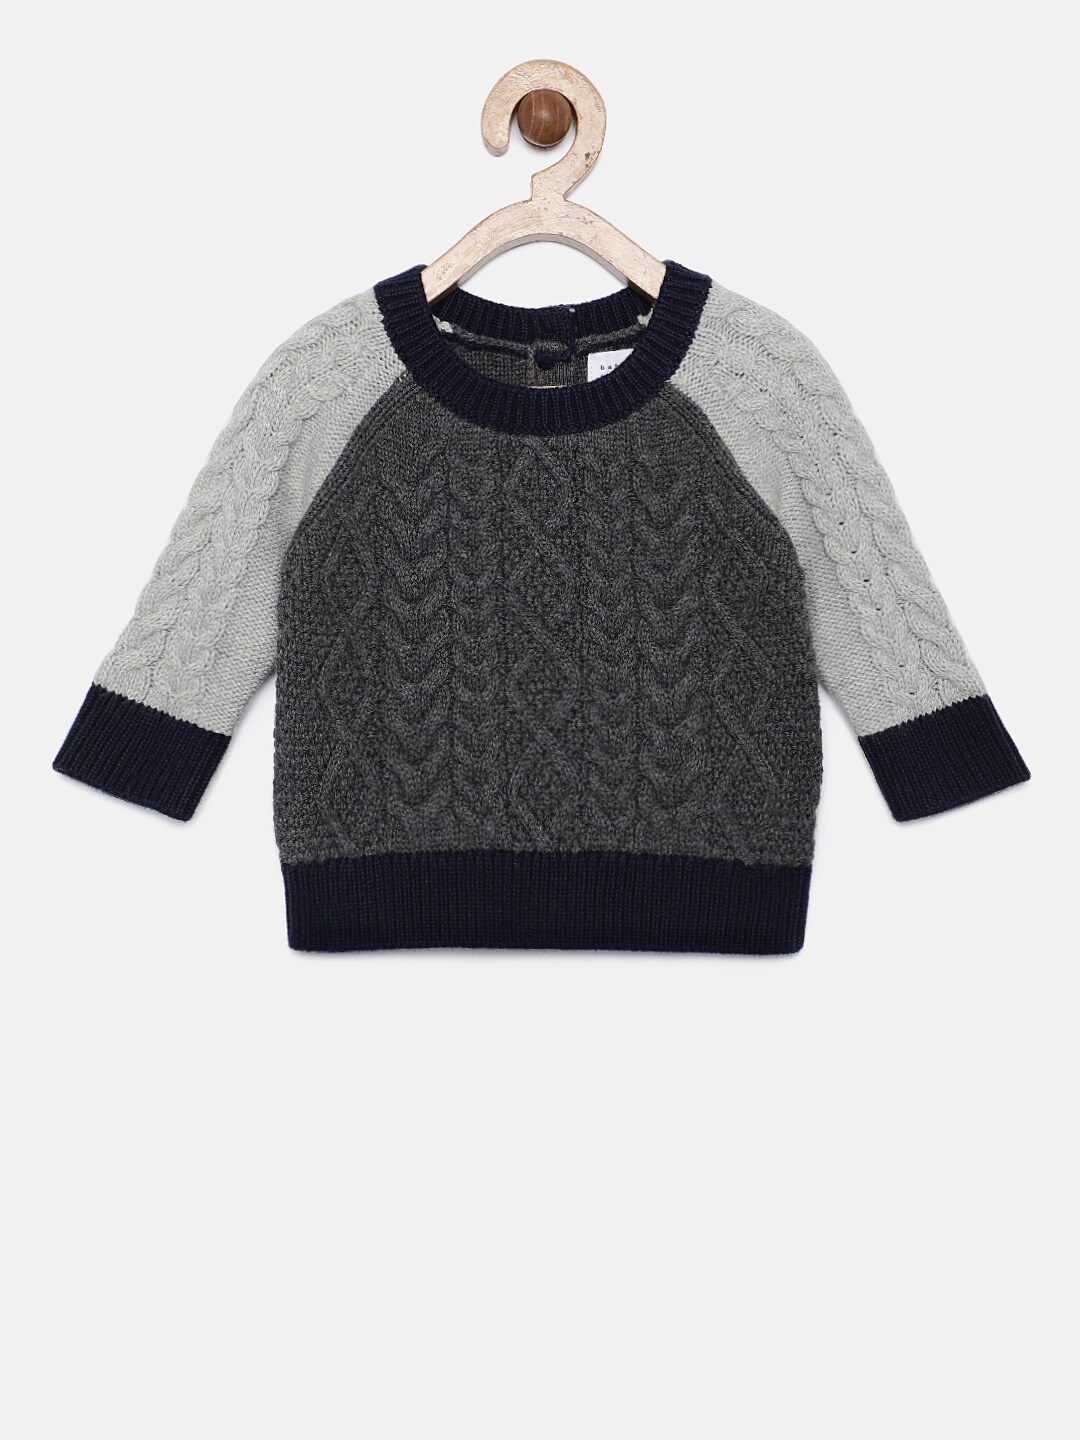 95a402a18b Boys Sweaters- Buy Sweaters for Boys online in India